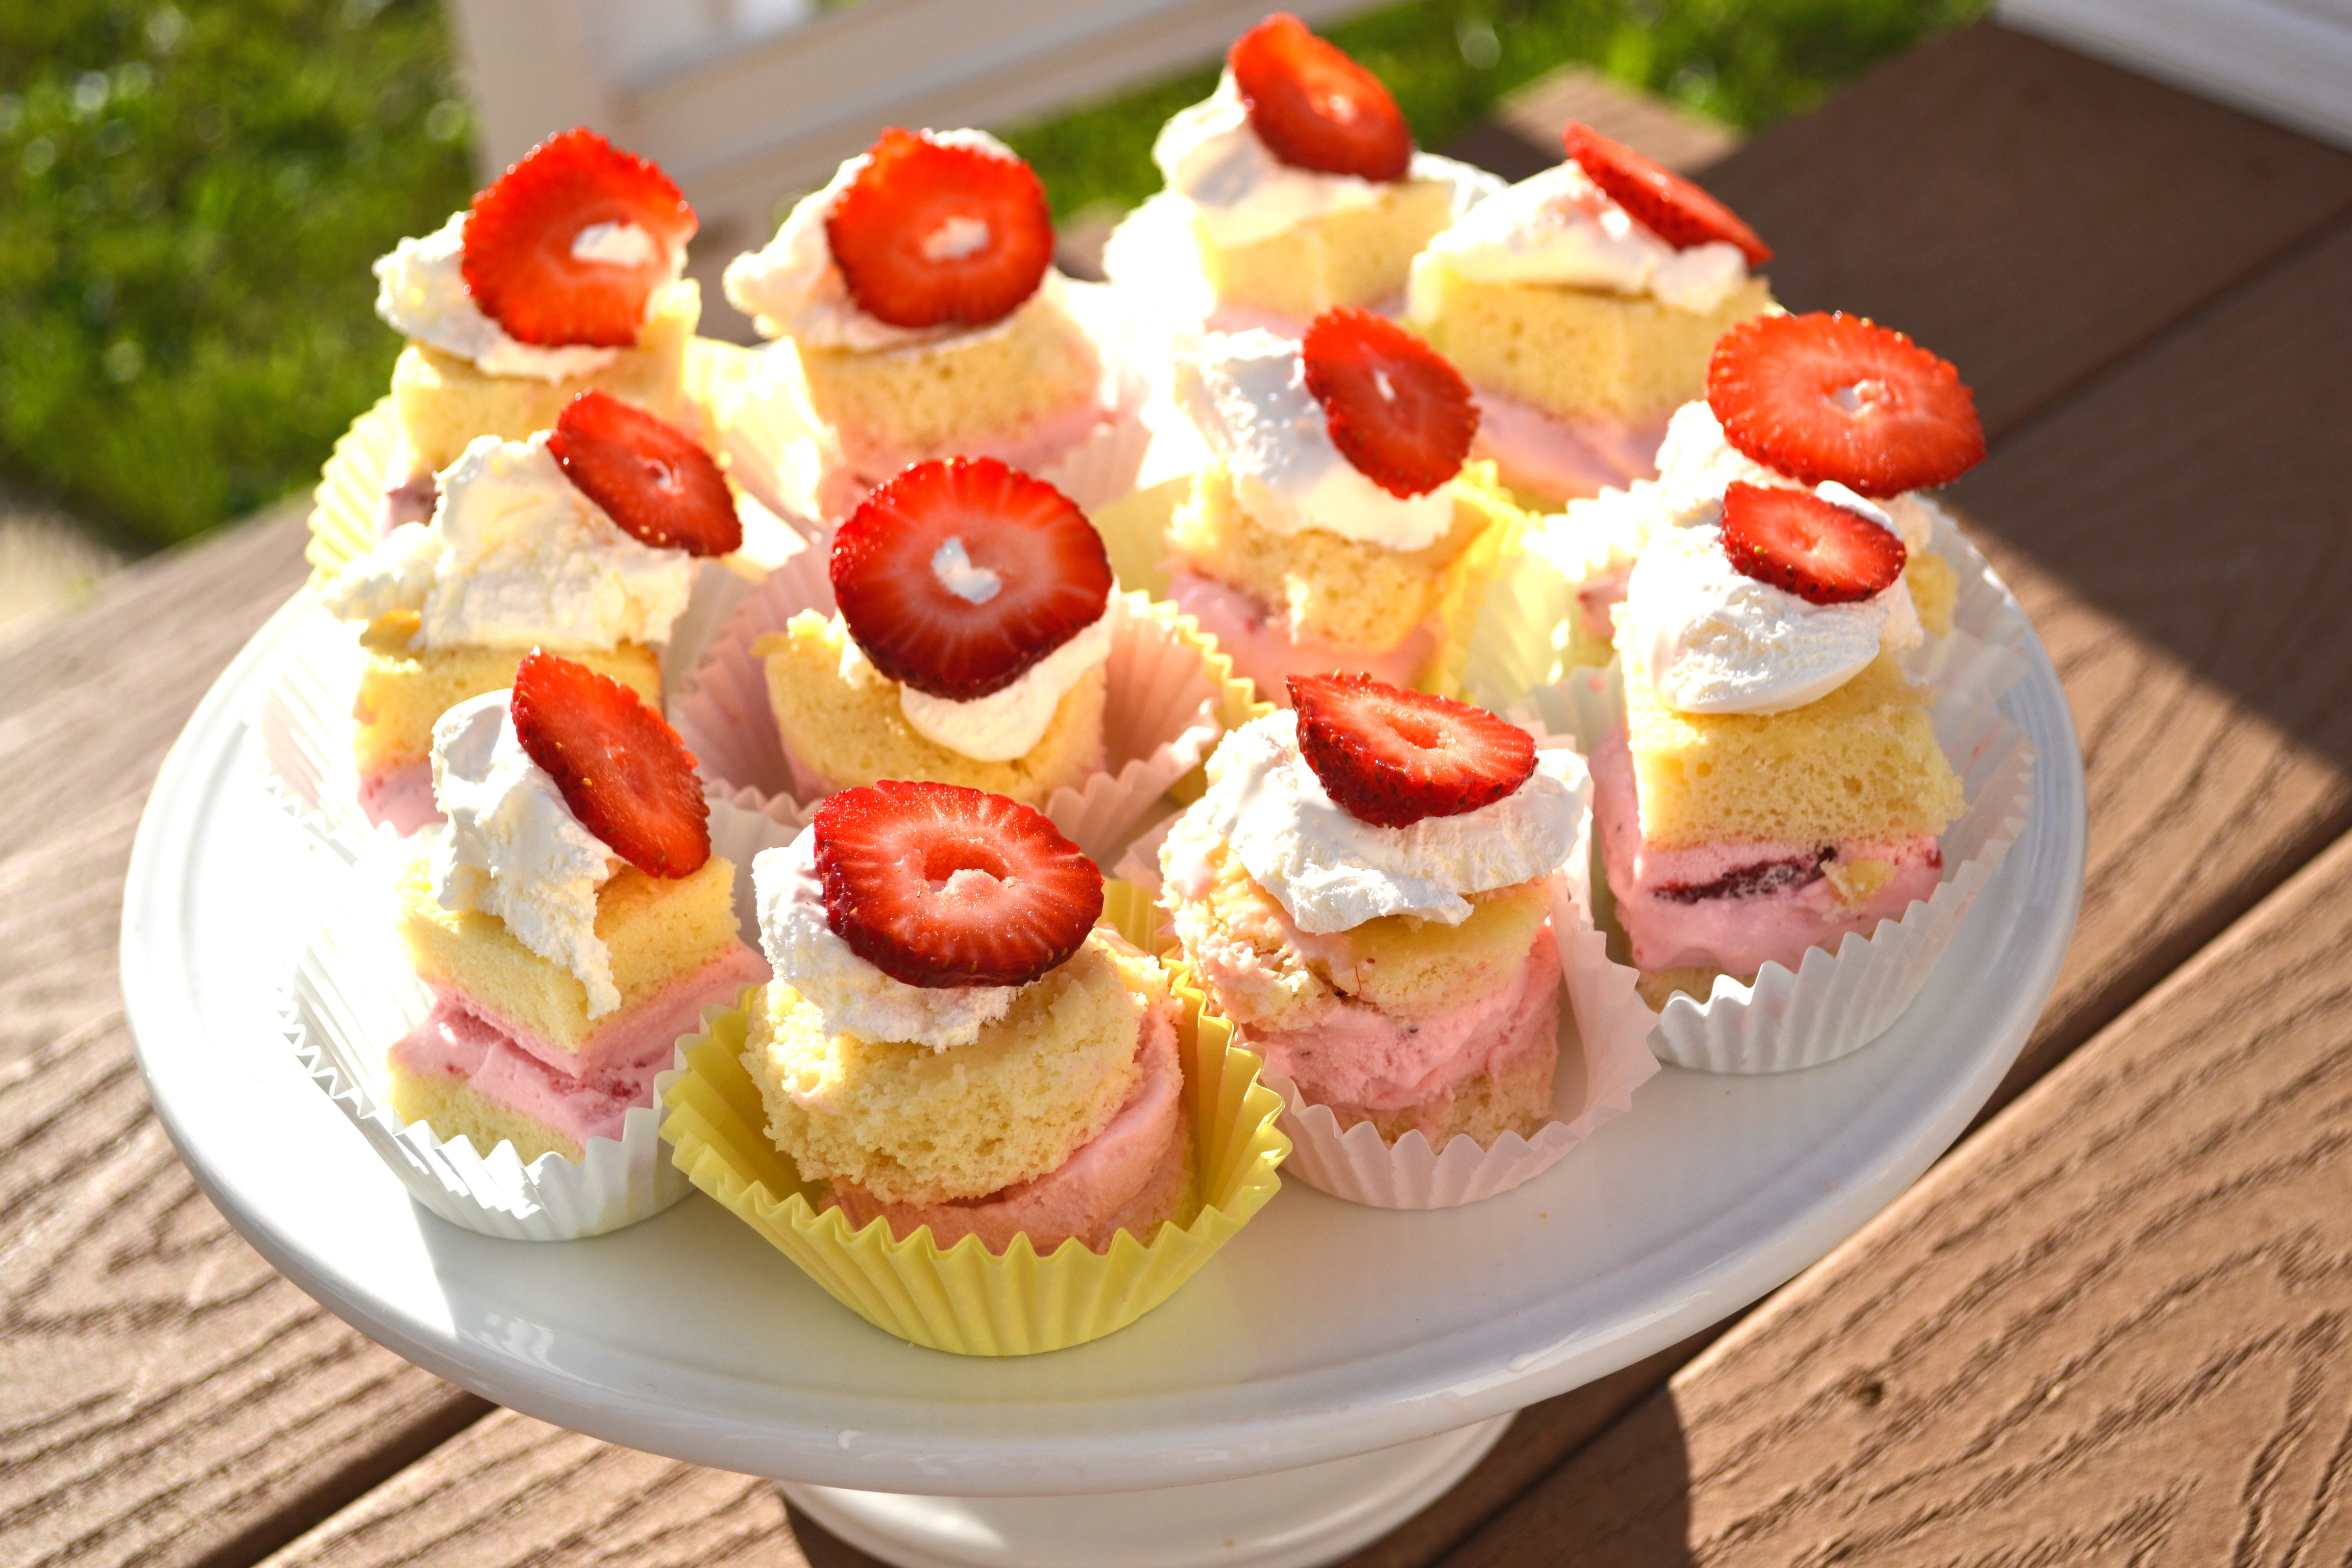 Esbs Mini Strawberry Ice Cream Cakes The Realistic